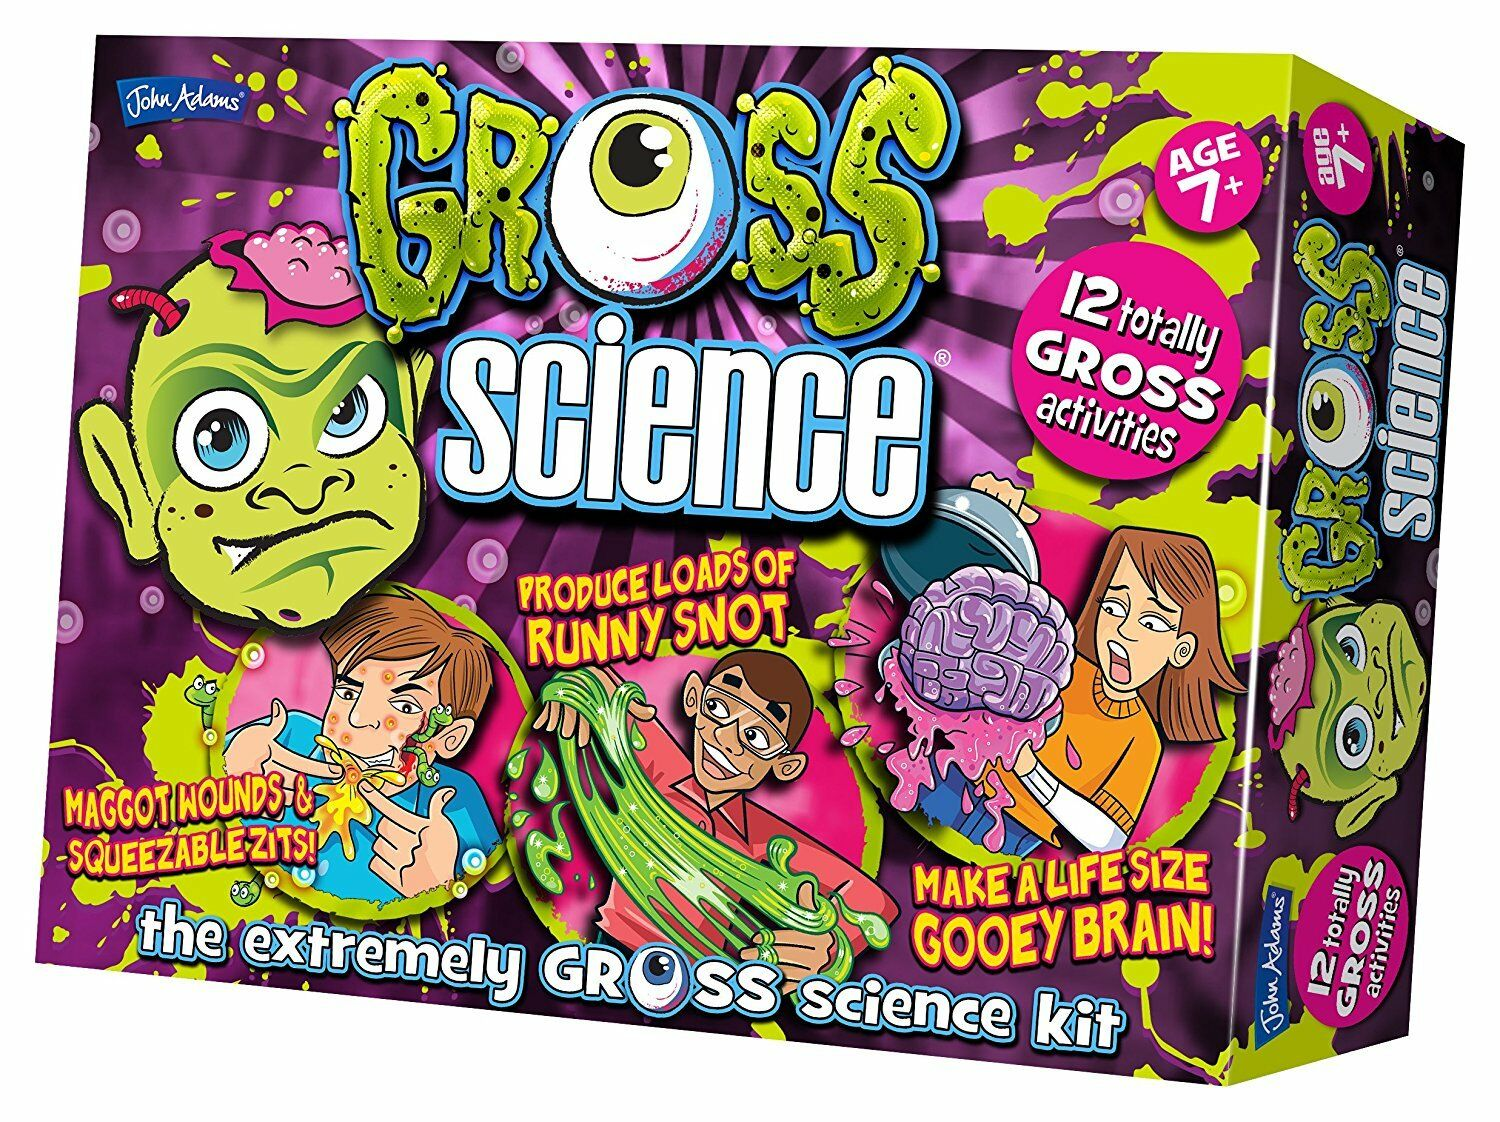 John Adams Gross Science Kit (The Extremely Gross Science Kit) BRAND NEW